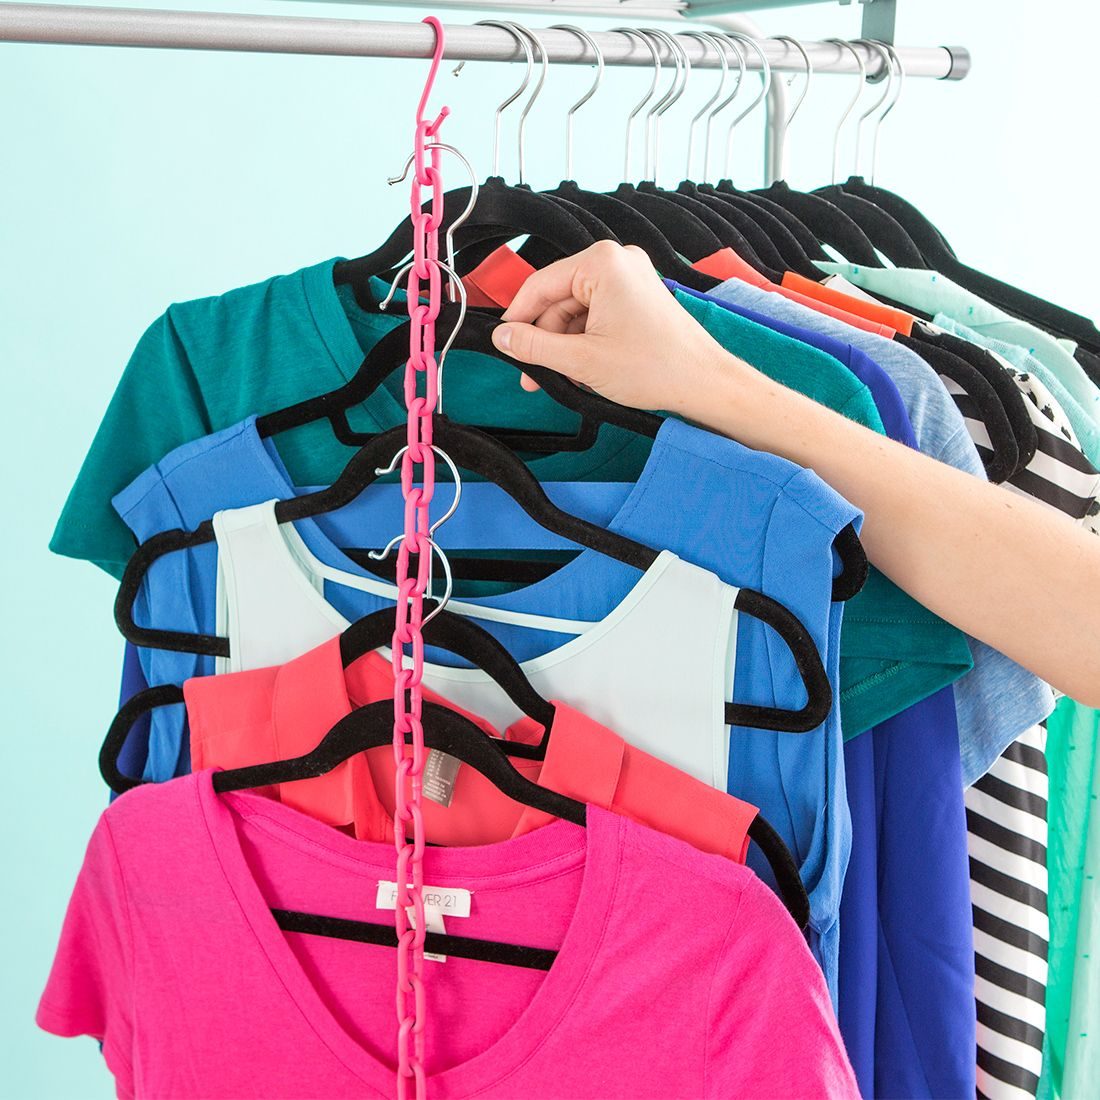 This Easy-to-Make Hanger Hack Is a Small Closet Game Changer